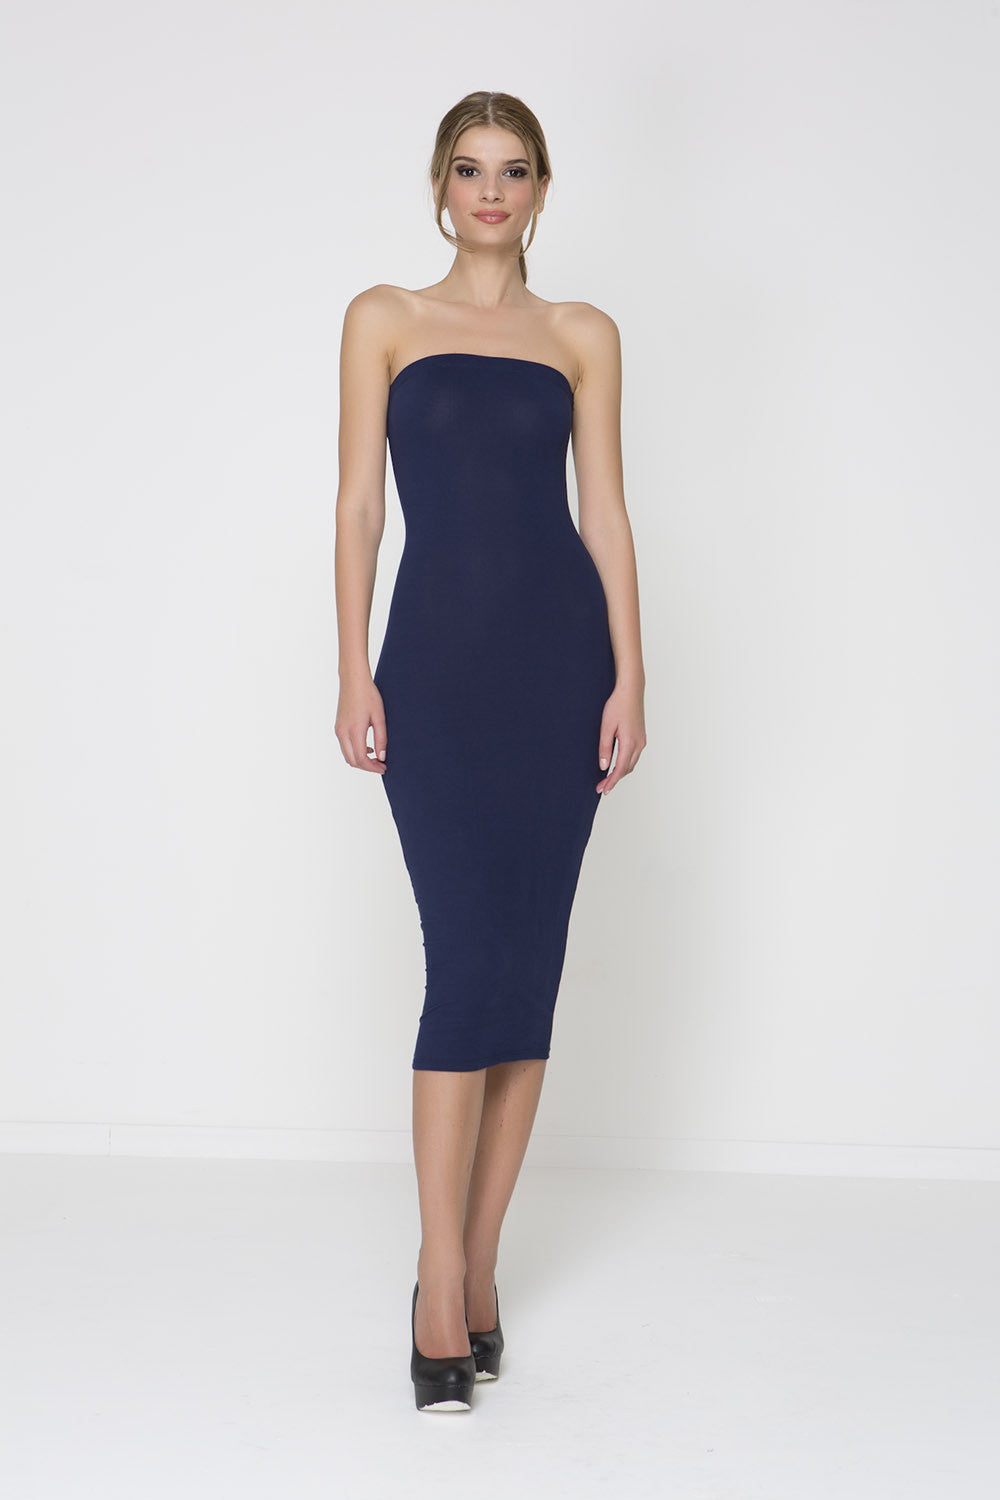 Body Con Knit Dress - Navy